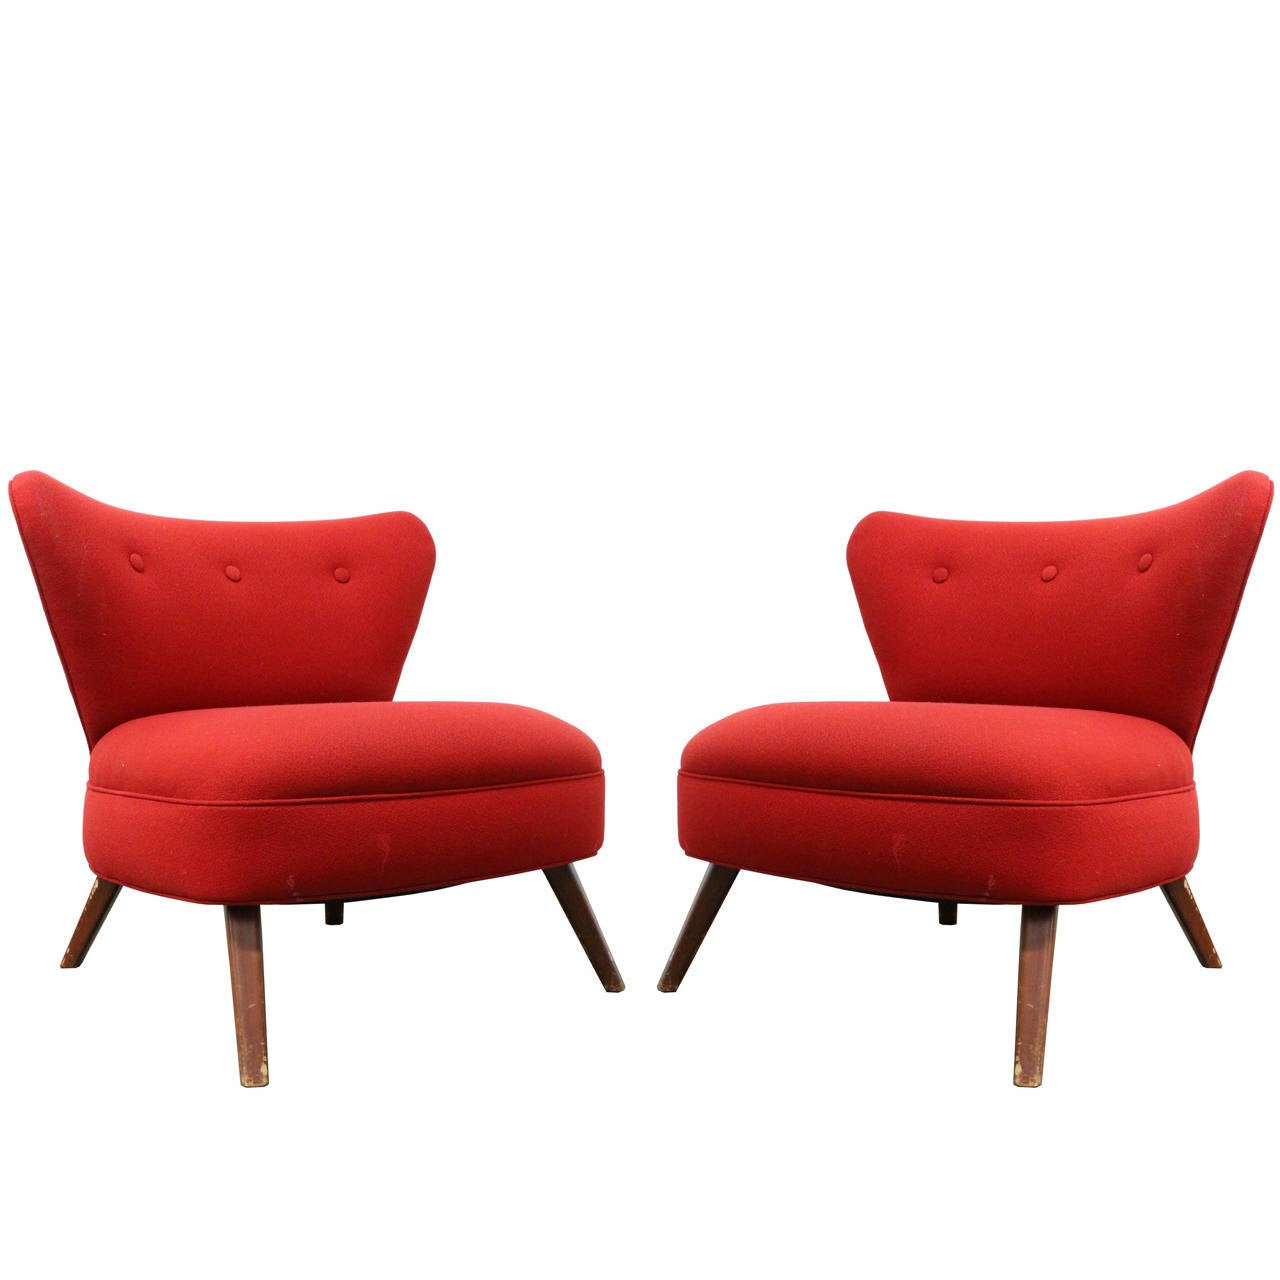 Red Slipper Chair Pair Of 1940s Red Wingback Slipper Chairs In The Style Of